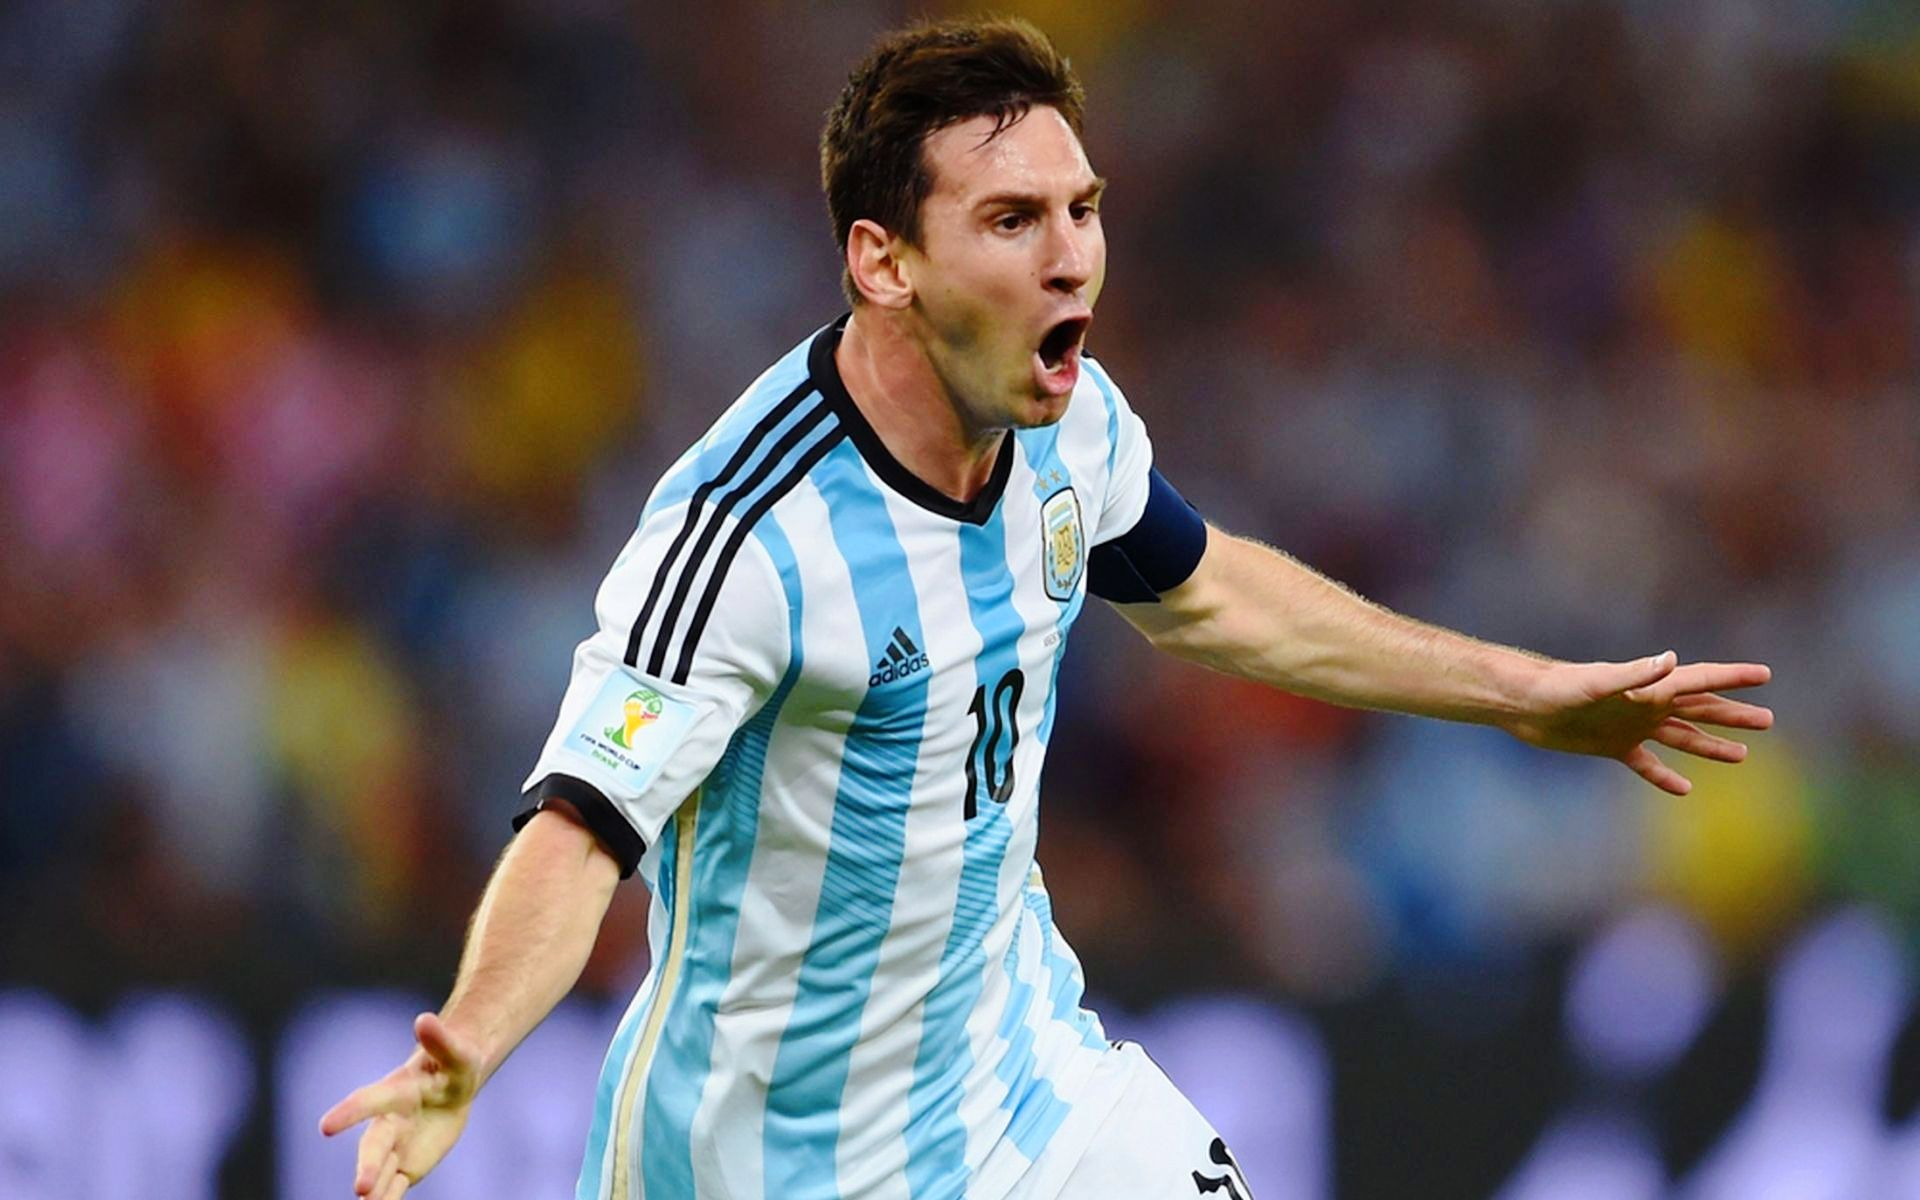 Lionel Messi Brazil World Cup 2014 Click To View